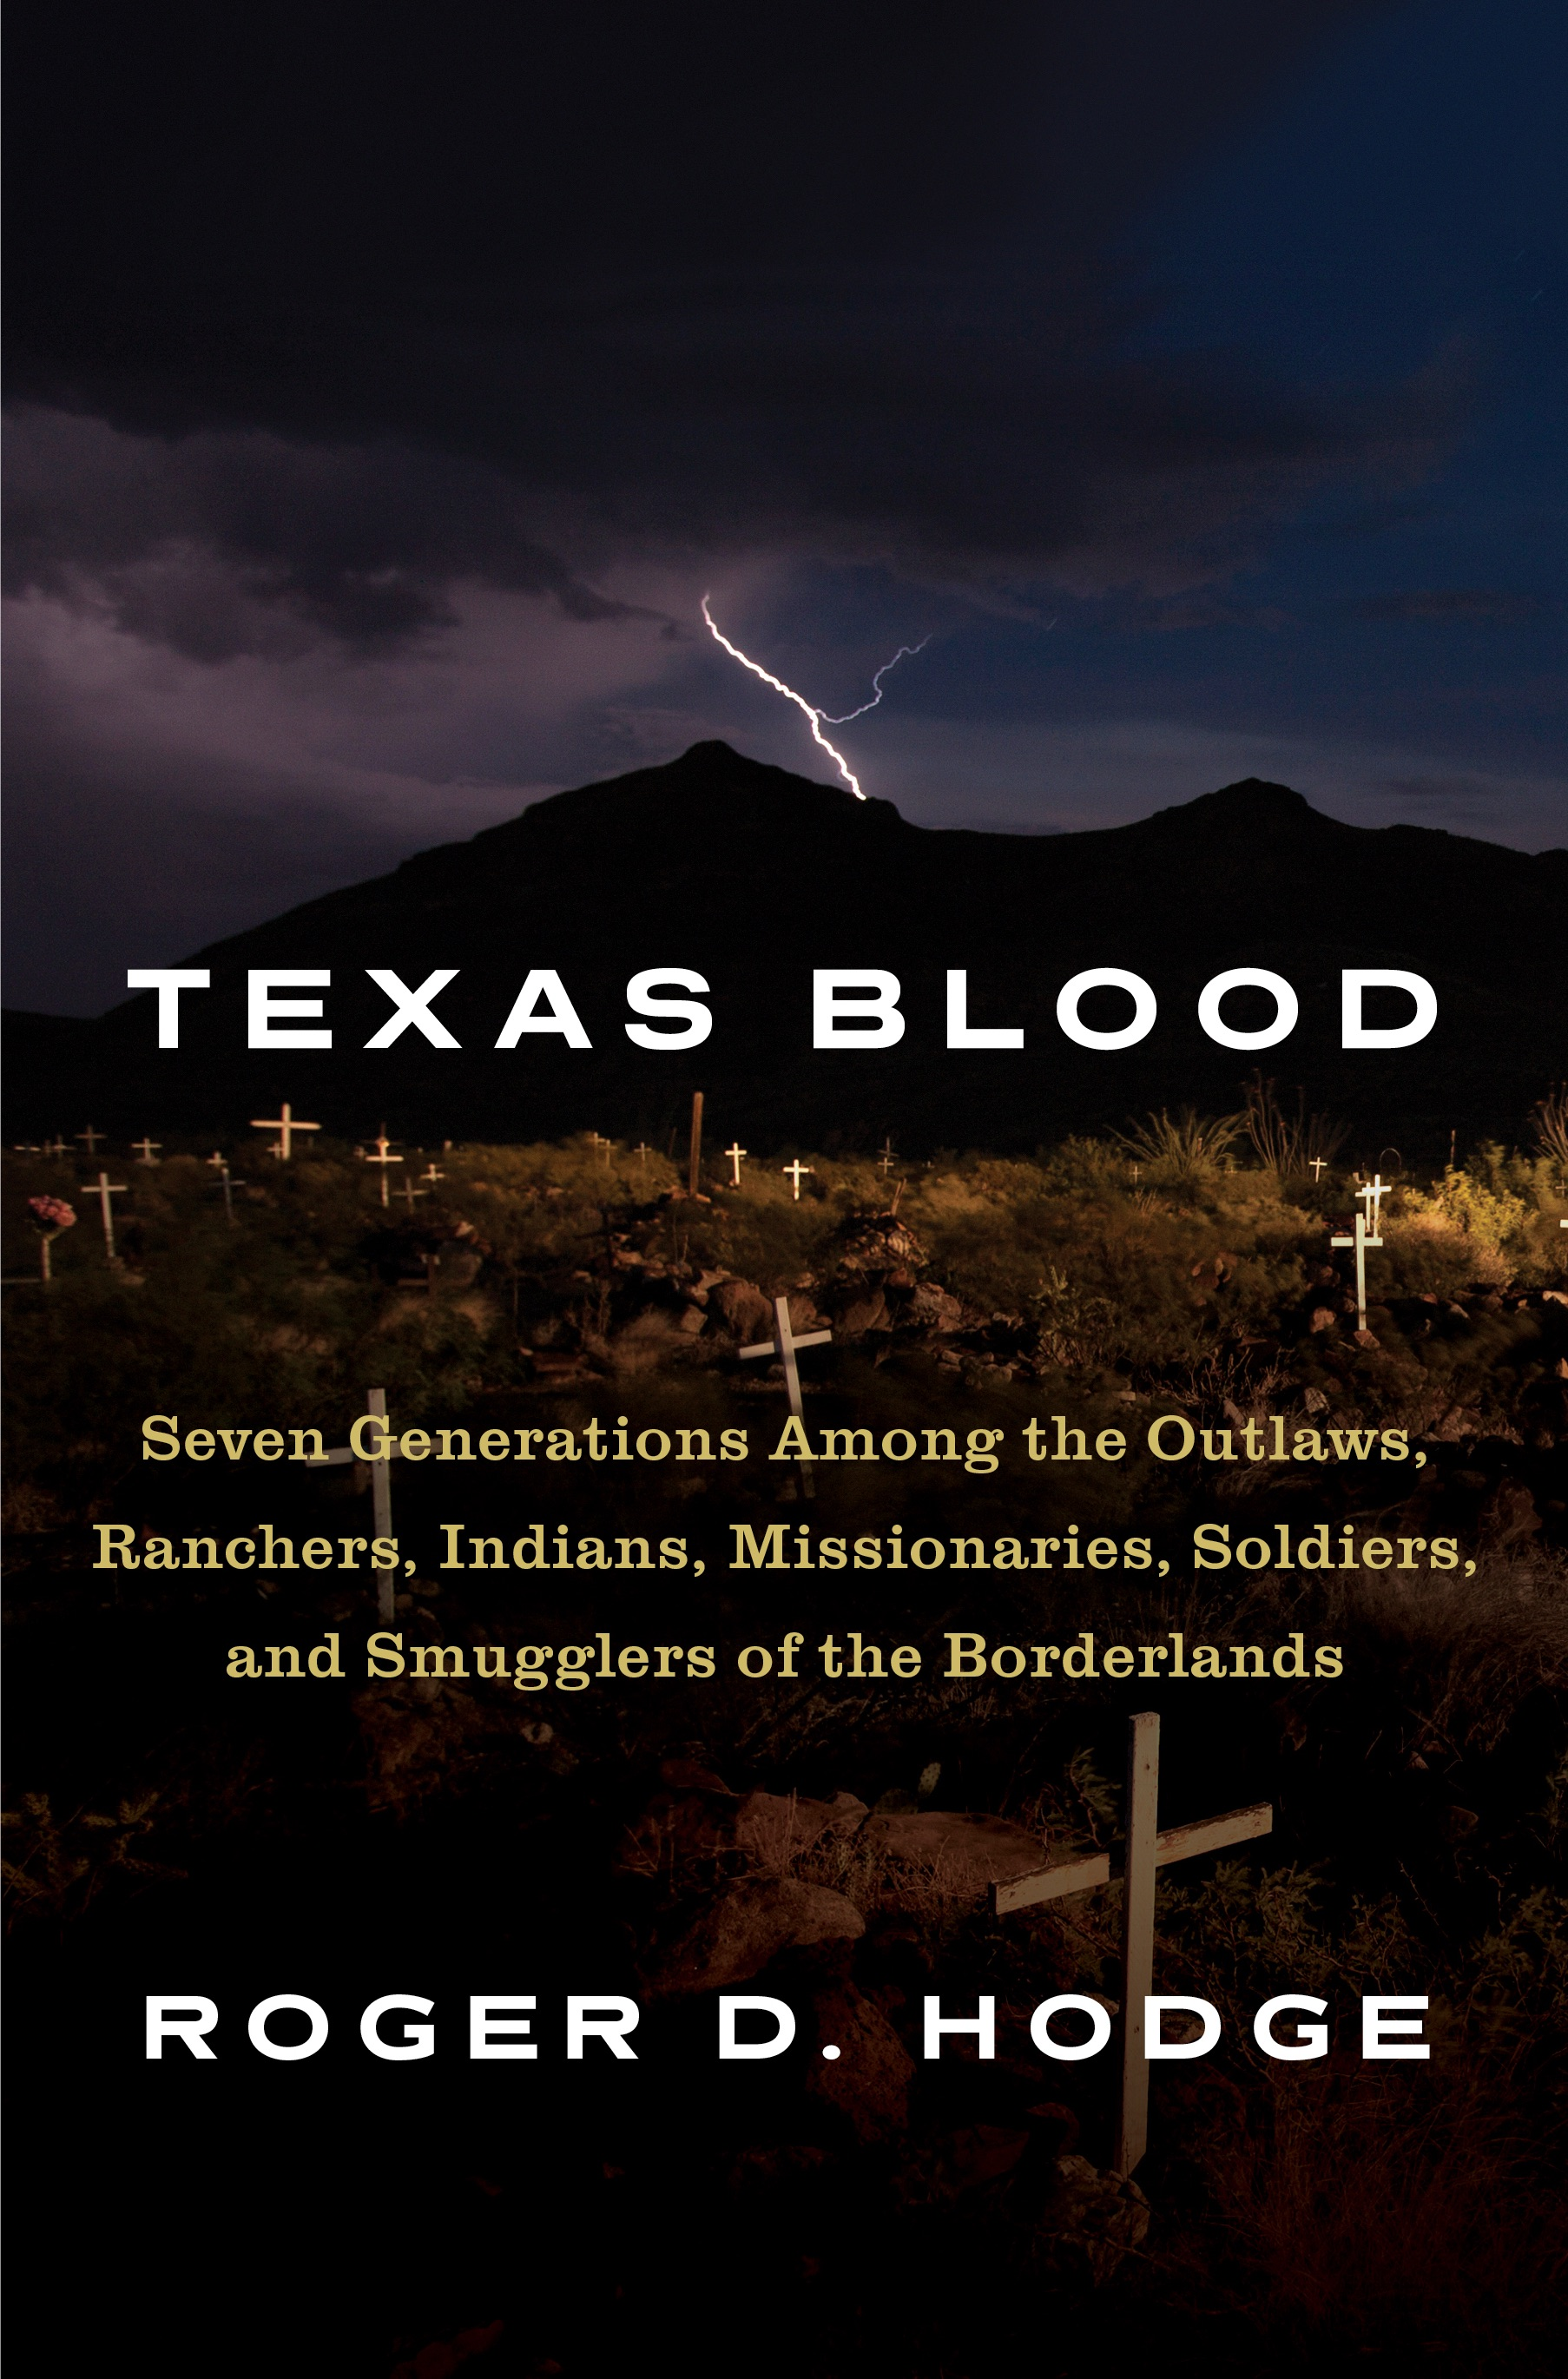 Texas Blood Book Cover Image.jpg